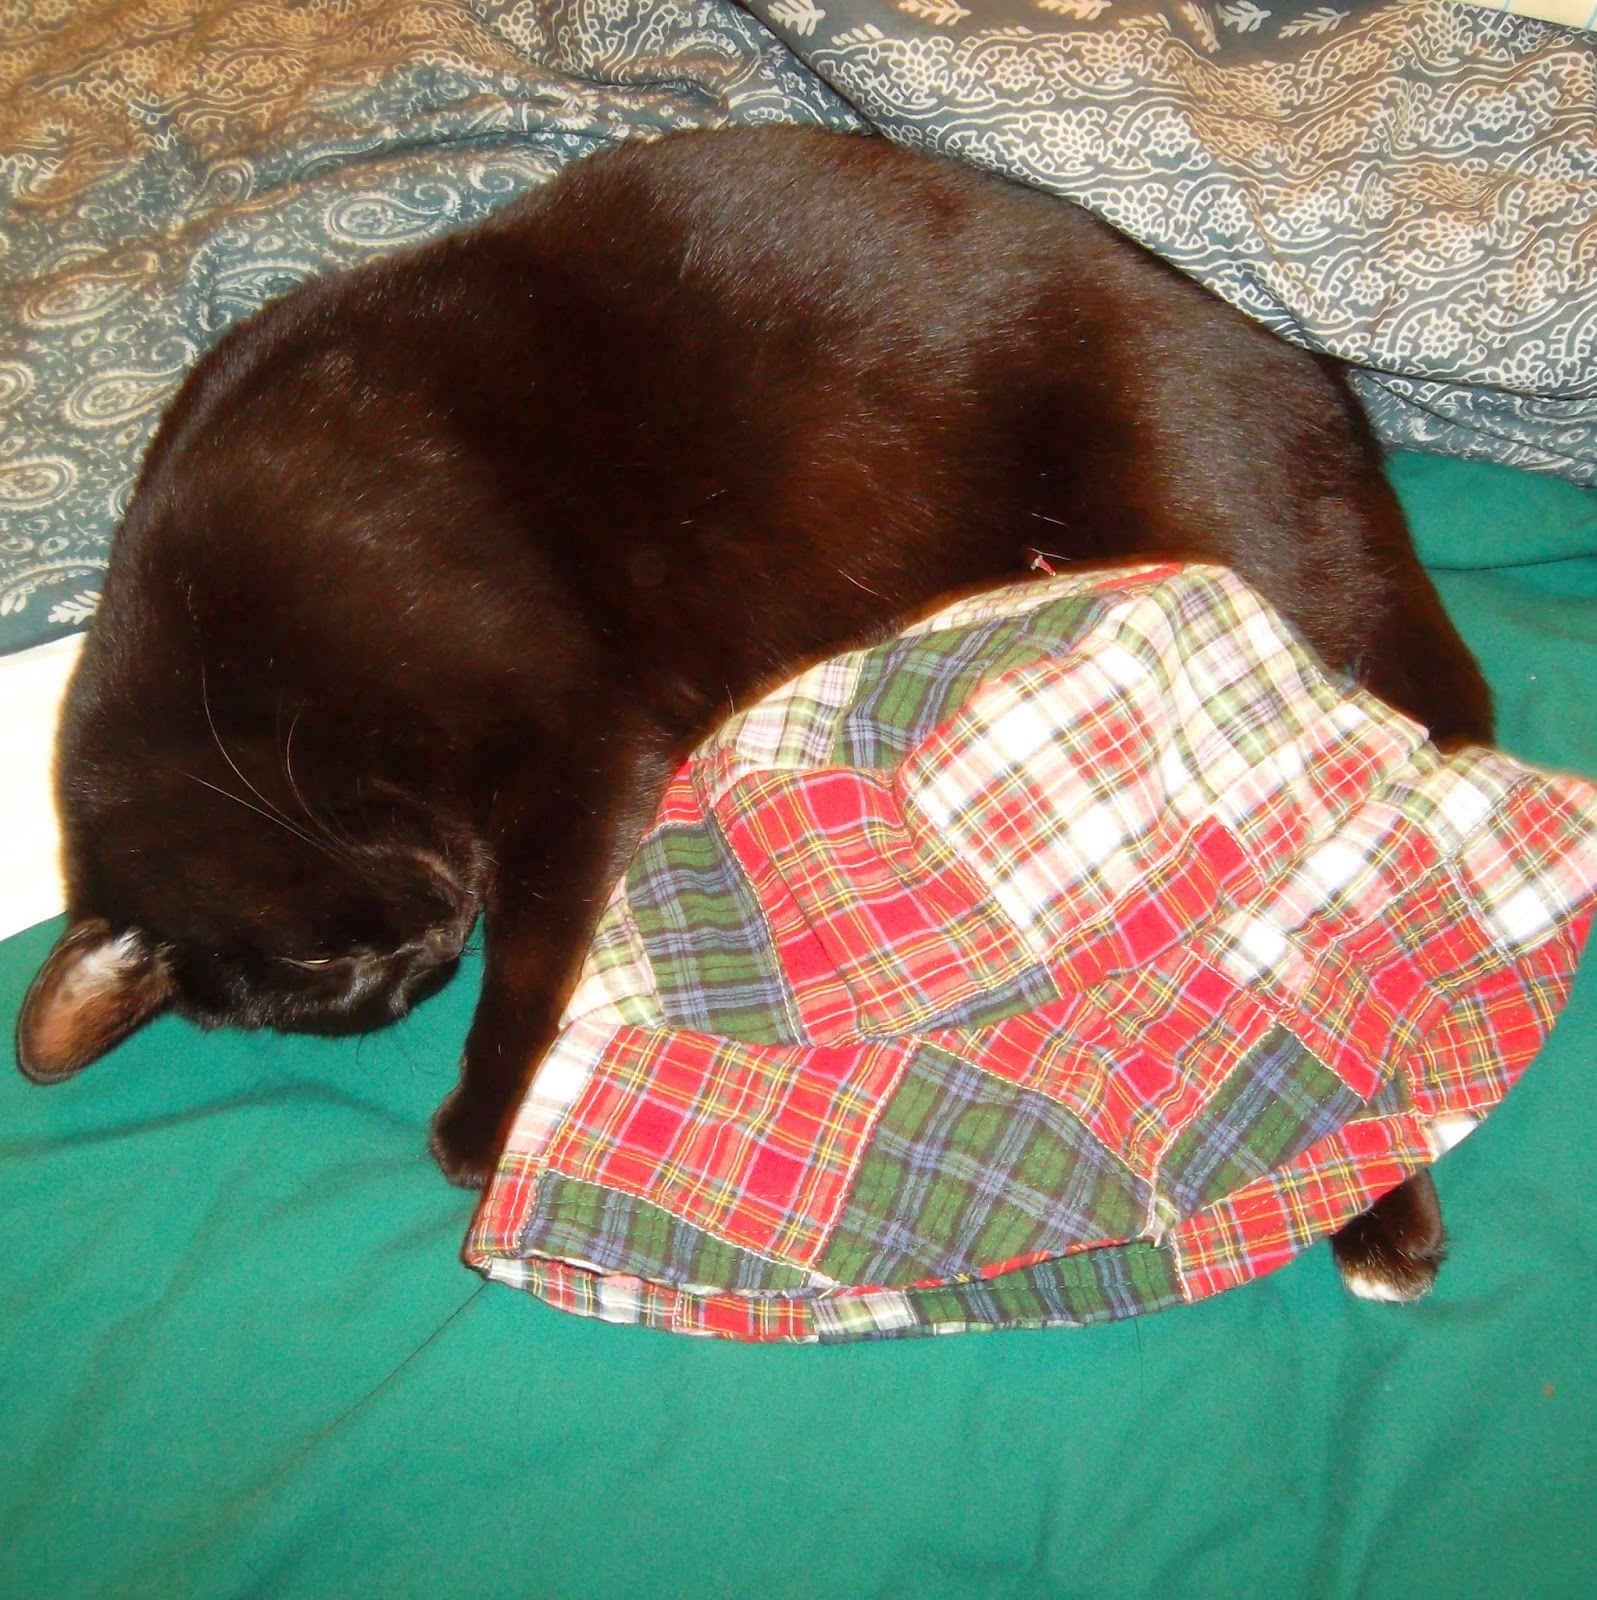 My black cat Starfire curls on her side, forming a half-circle around a hat sewn from piecework squares in four plaid designs: dark red, blue and green, red on white and blue and green on white.